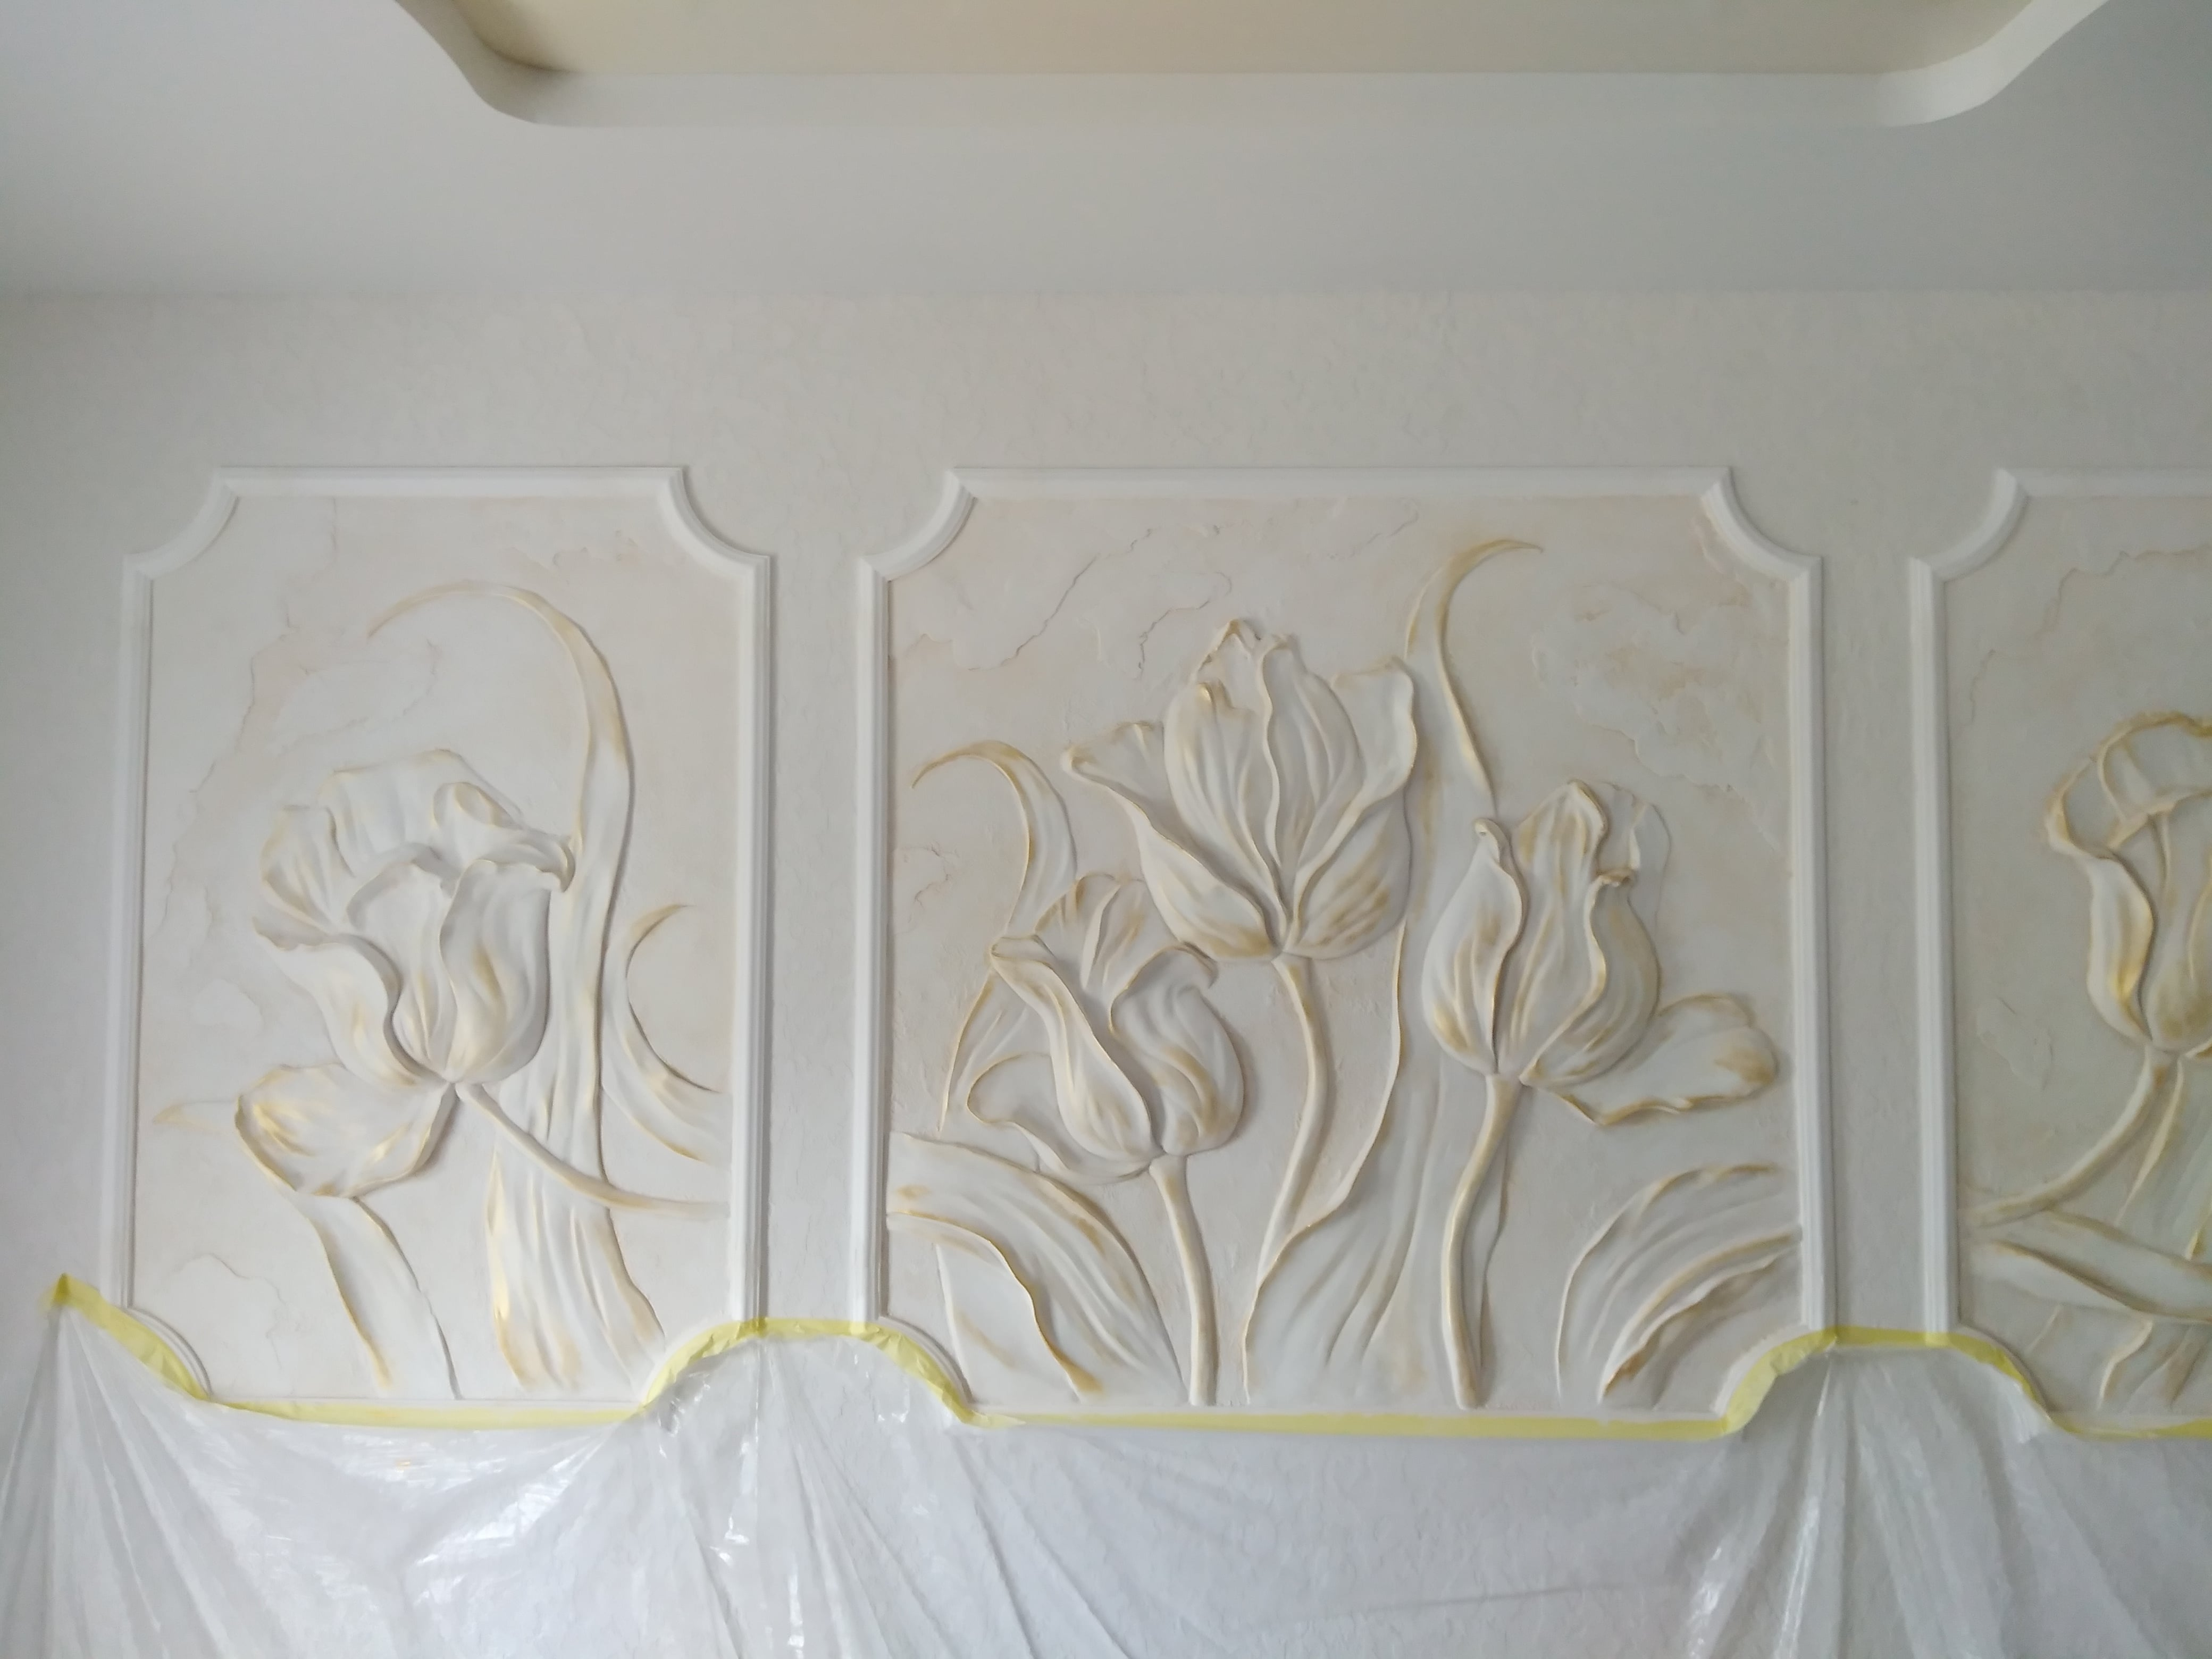 <p>Bas-relief Tulips. Triptych</p>